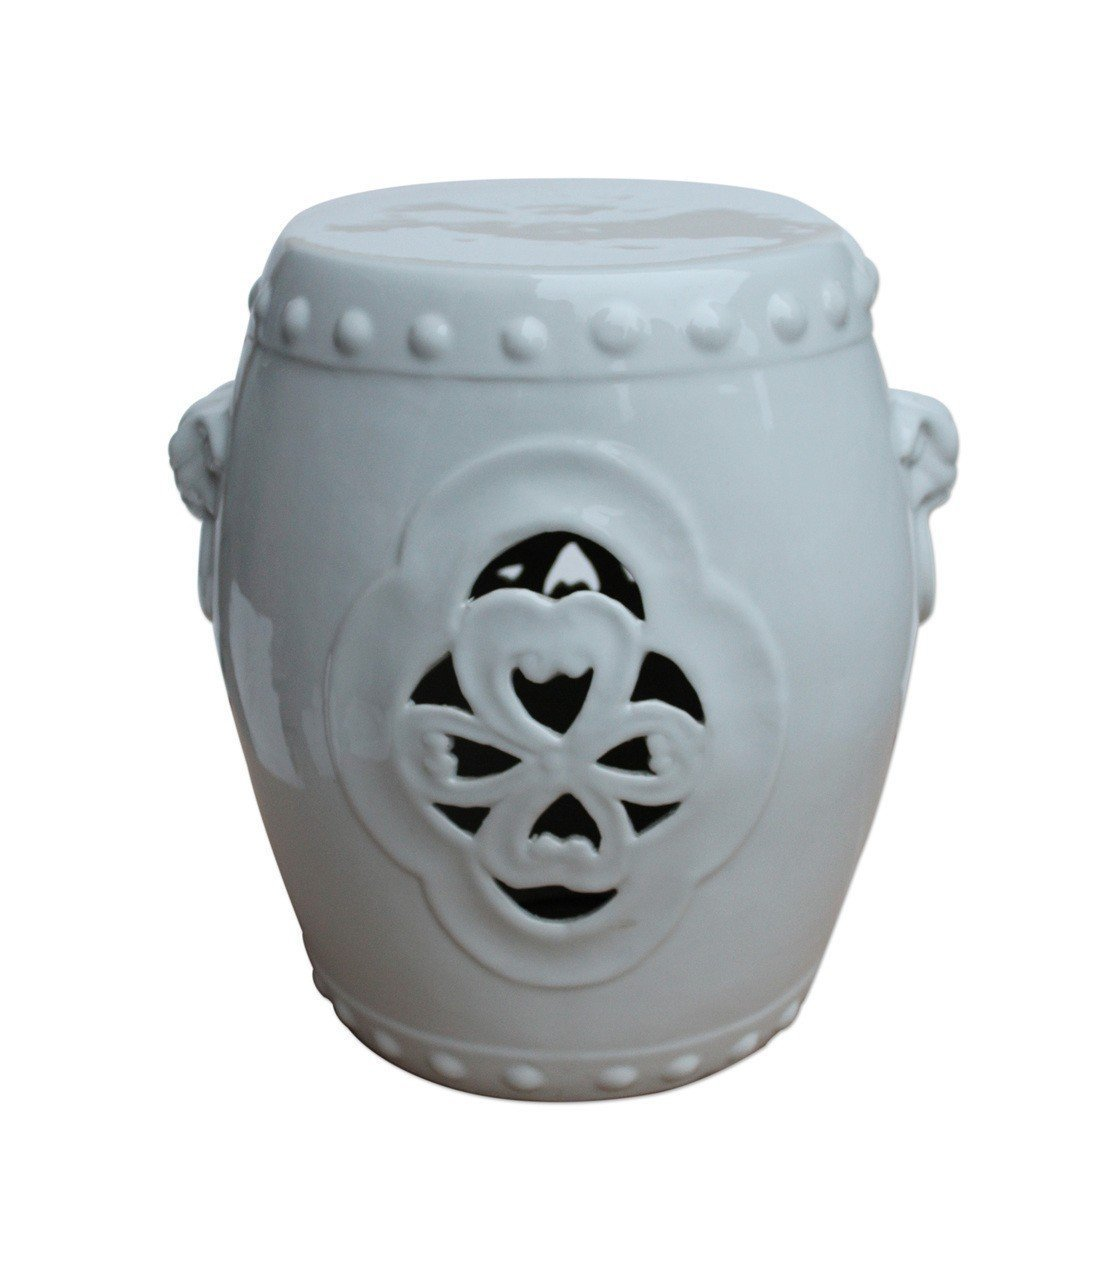 Asian Traditional Chinese White Carved Floral Garden Stool With Ears Asian Traditional Chinese Orange Lion Temple Jar Ceramic / Porcelain Decorative Spice Jar / Storage